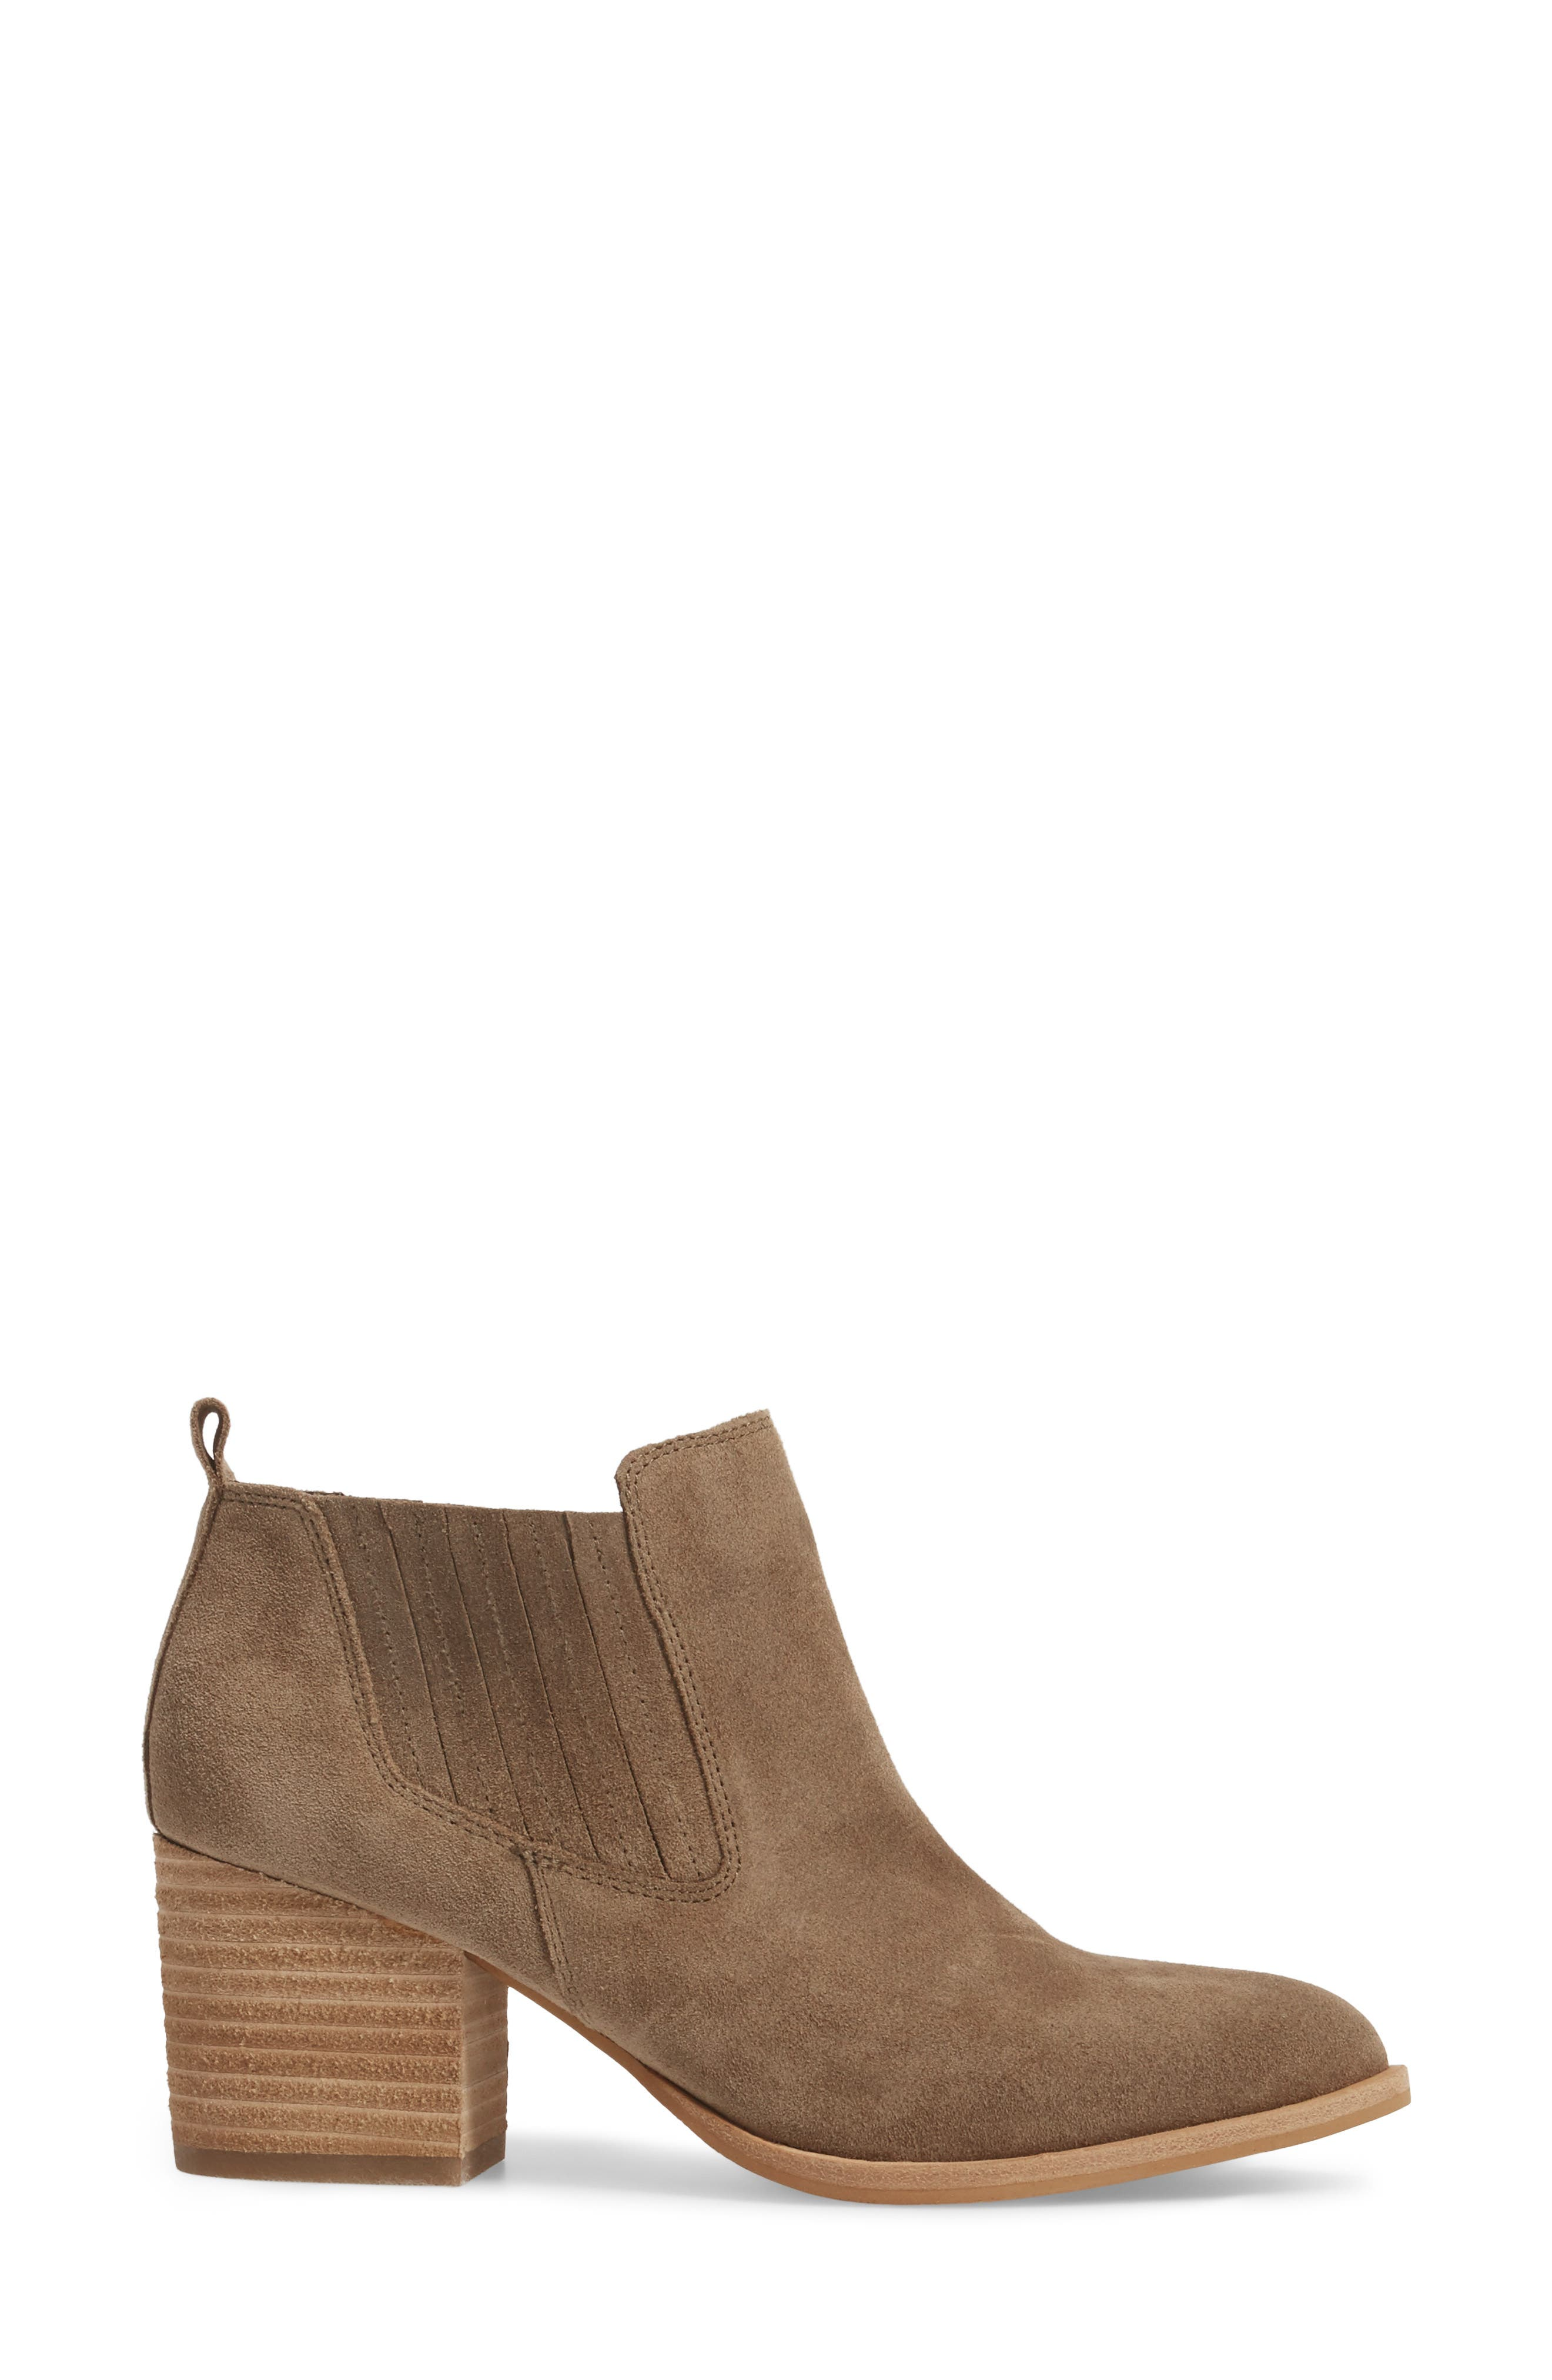 Olicia Gored Bootie,                             Alternate thumbnail 3, color,                             MARMOTTA LIGHT GREY SUEDE